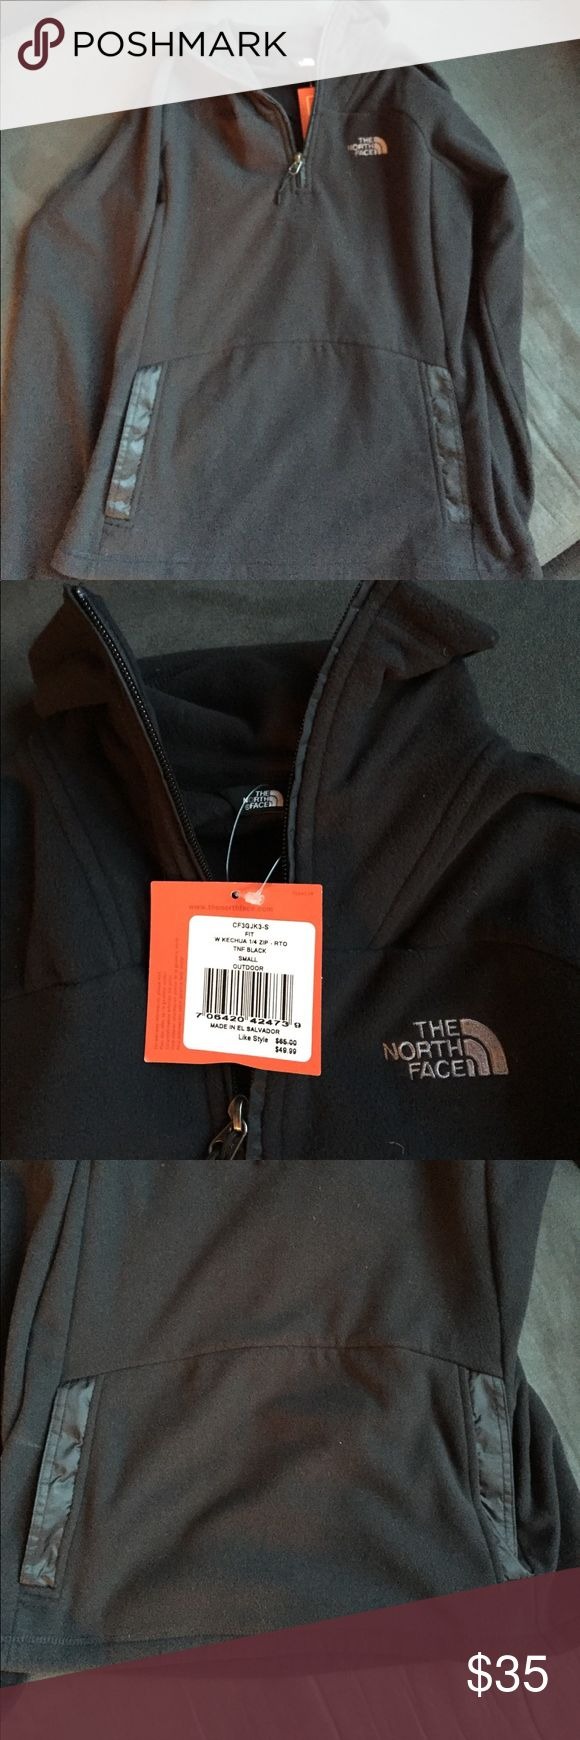 Black North Face Fleece- NWT NWT black fleece quarter zip from The North Face factory outlet store. Women's size small. Has a large pocket on the front of the jacket like a hoodie would have. The North Face Tops Sweatshirts & Hoodies